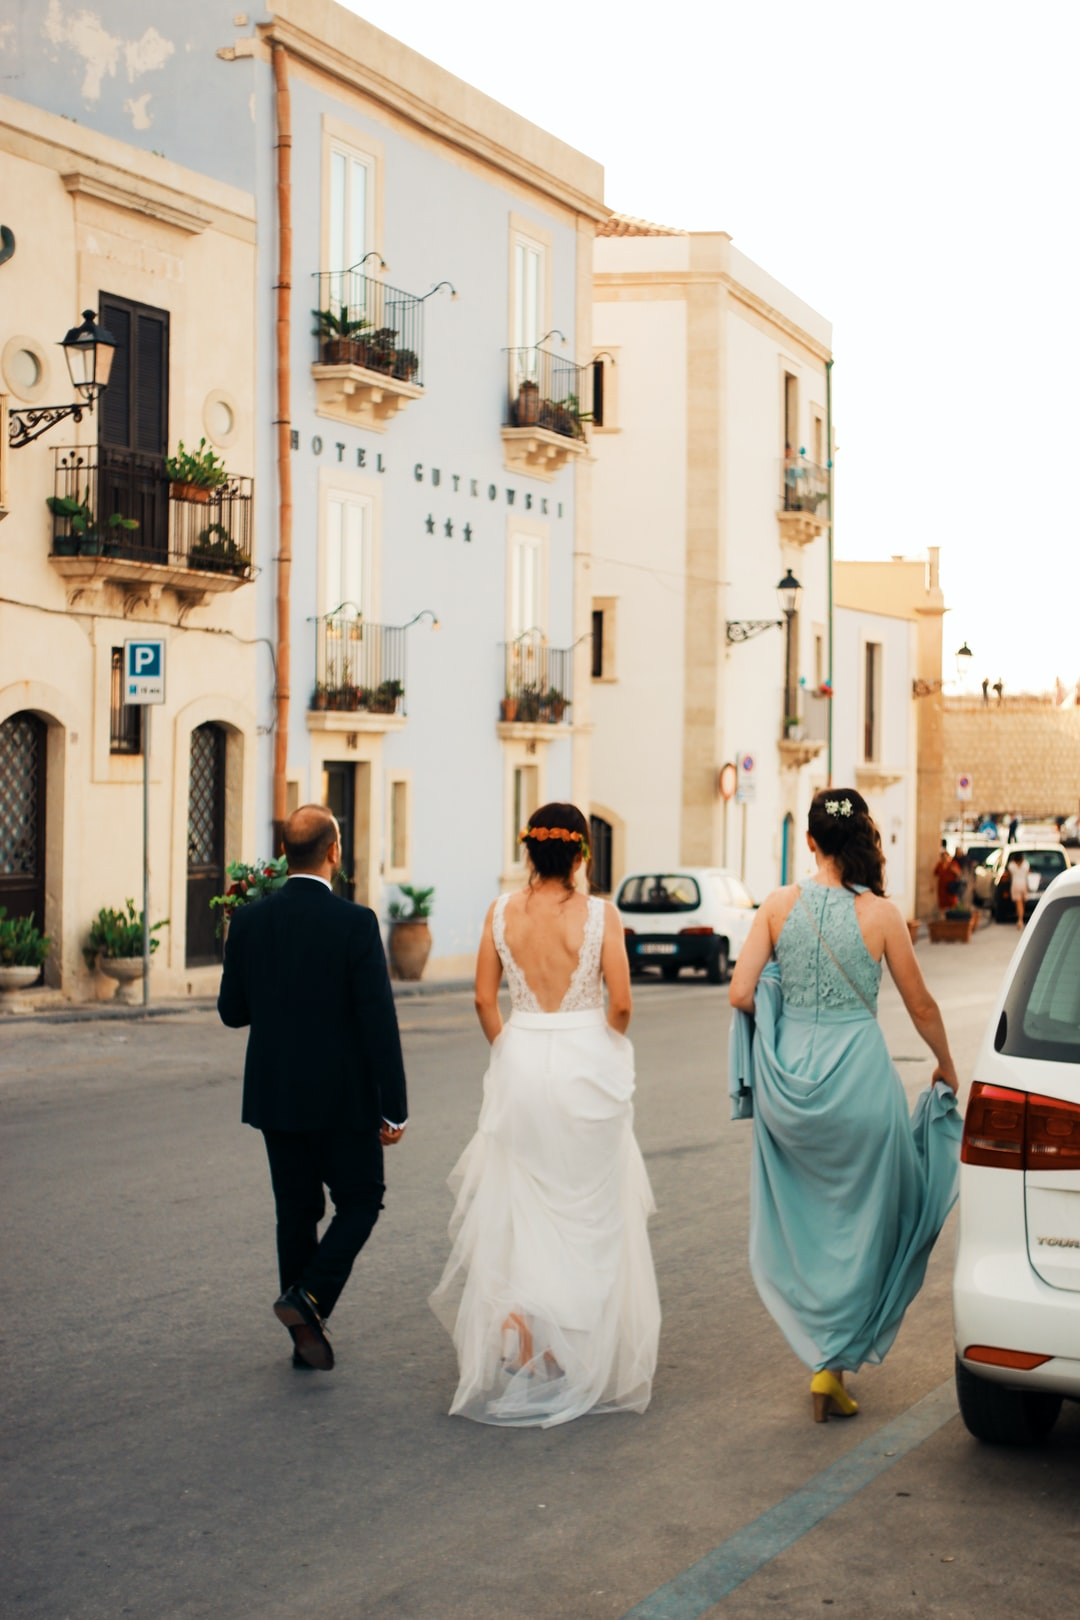 A summer wedding in Italy, newlywed couple bride and groom with bridesmaid